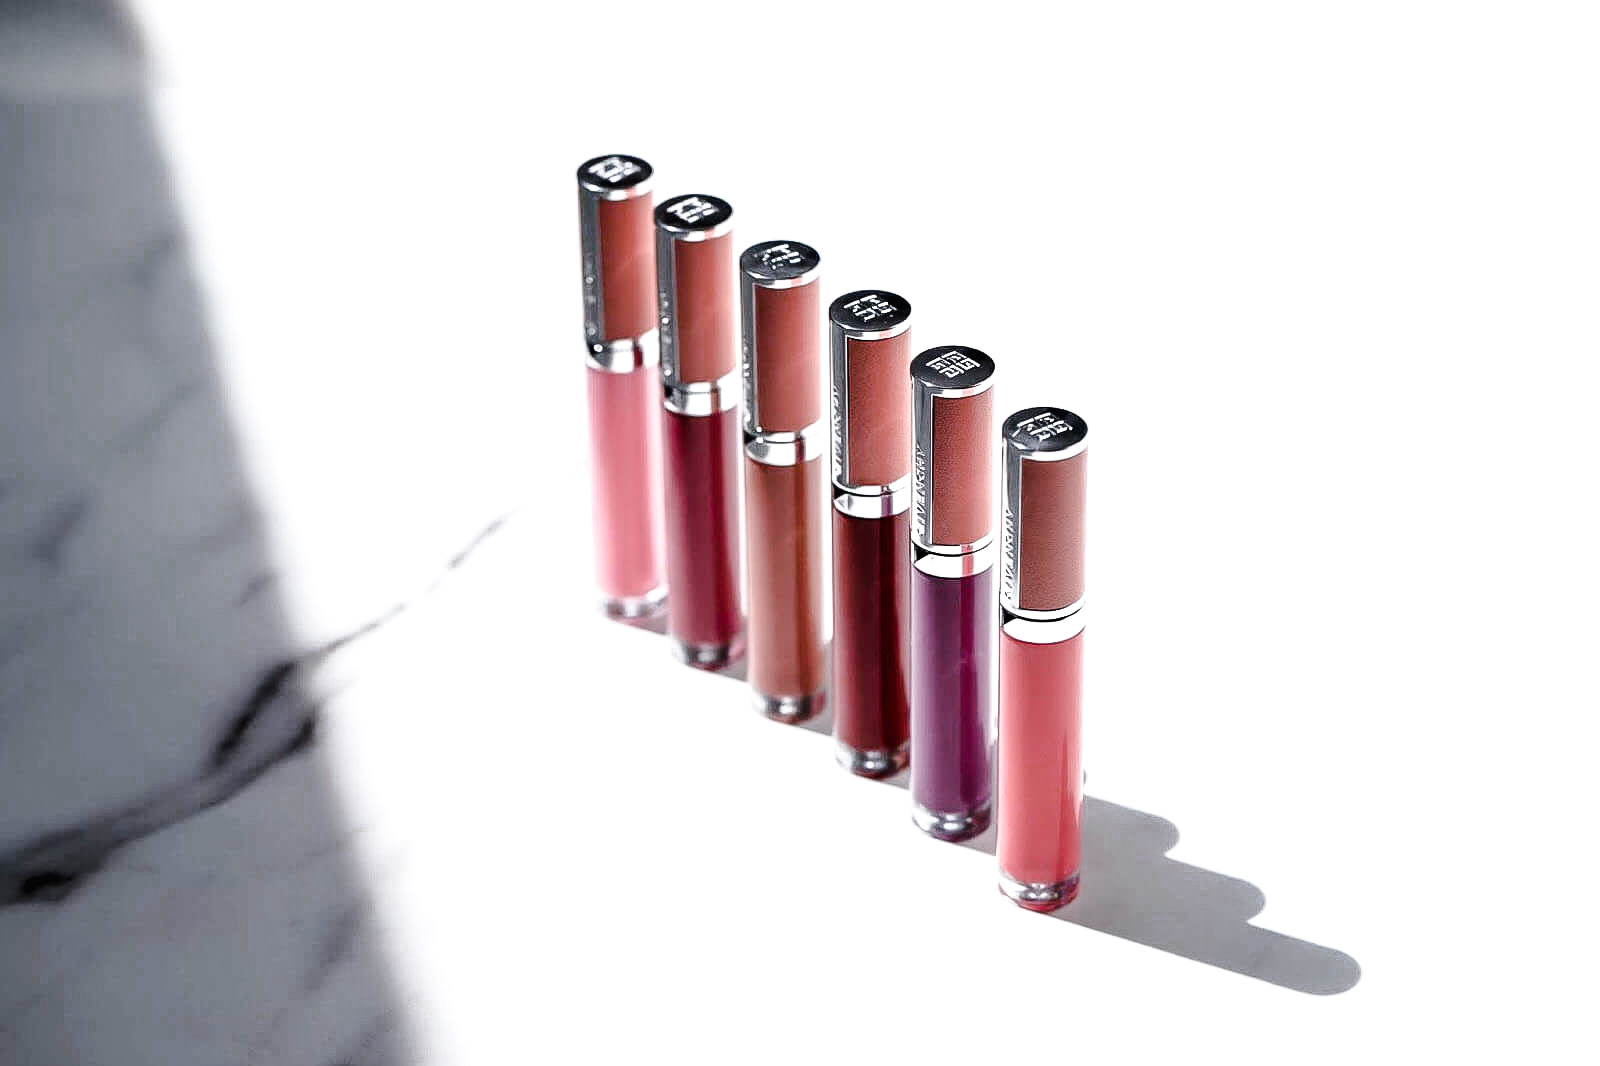 Givenchy Le Rose Perfecto Baume Liquide Gloss swatch